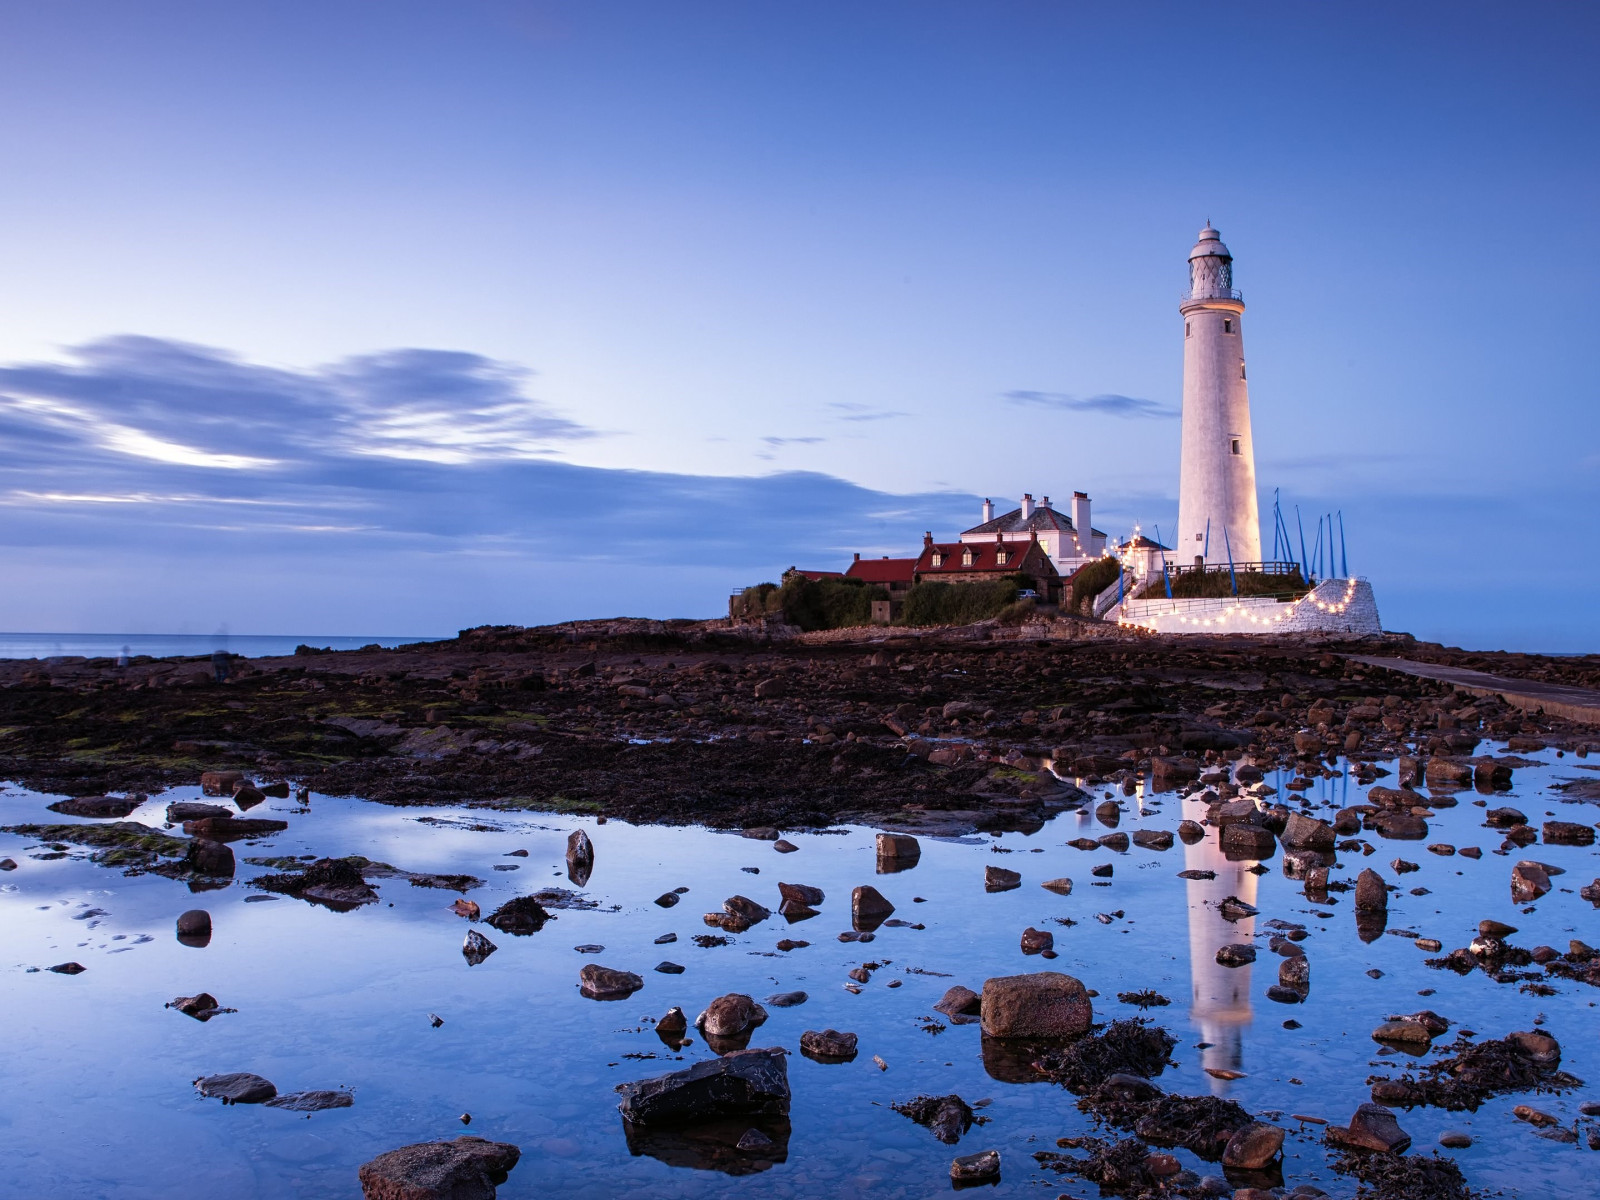 Saint Mary's lighthouse wallpaper 1600x1200